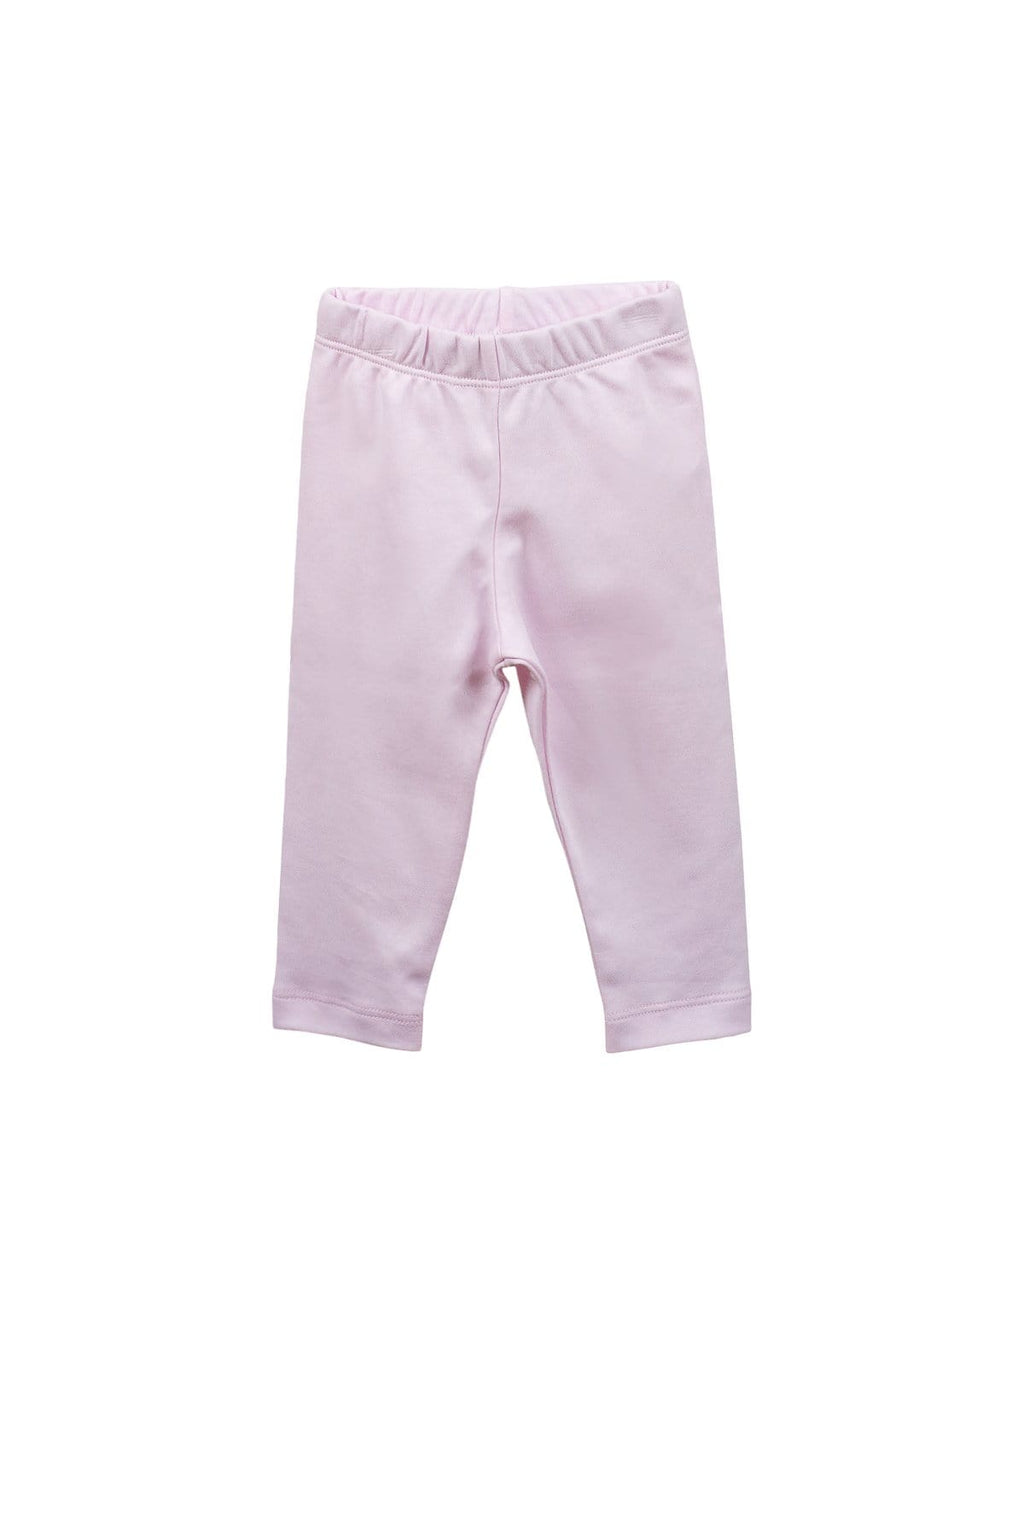 The Proper Peony Parkside Pink Leggings